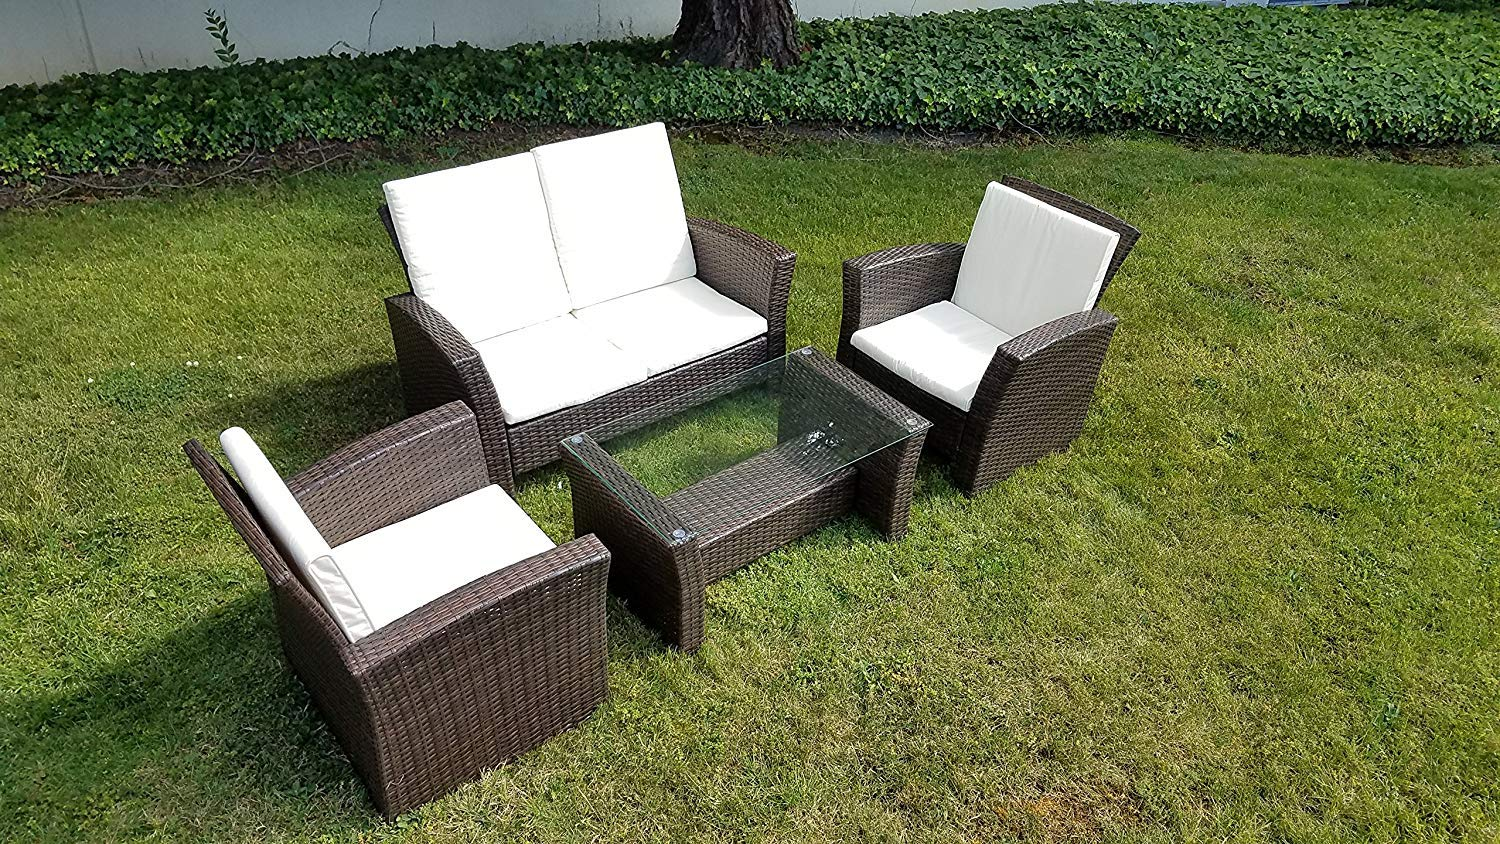 UFI 4pcs Outdoor Patio Furniture Sets Wicker Ratten Garden Sofa with Cushions and Glass Table RTA,Brown by UFI